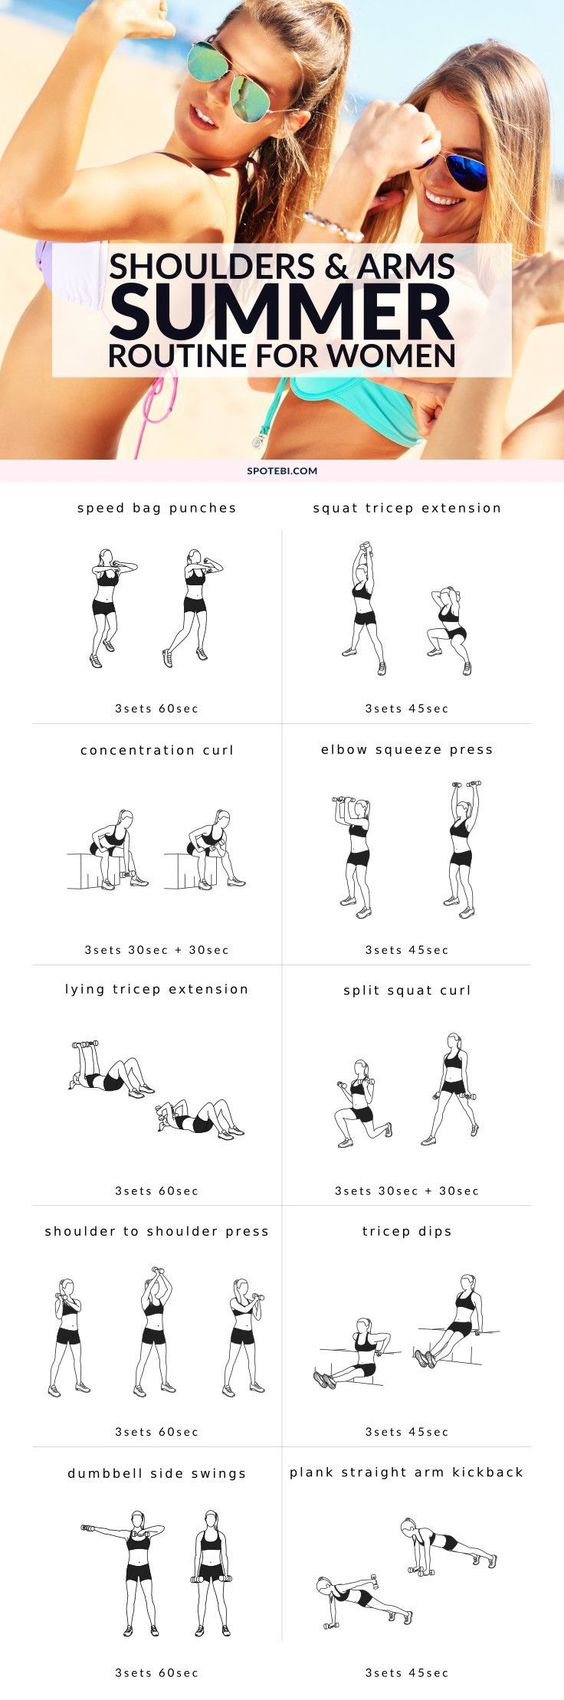 See more here ► https://www.youtube.com/watch?v=-pwmXYq0RQk Tags: best ways losing weight, best way to lose weight quick, best way to run to lose weight - Get your upper body fit and toned for Summer with this shoulders and arms workout for women. A complete 30 minute circuit that combines cardio and strength training moves to create a well-rounded, fat-burning routine. http://www.spotebi.com/workout-routines/shoulders-arms-workout-for-women/ #exercise #diet #workout #fitness #health